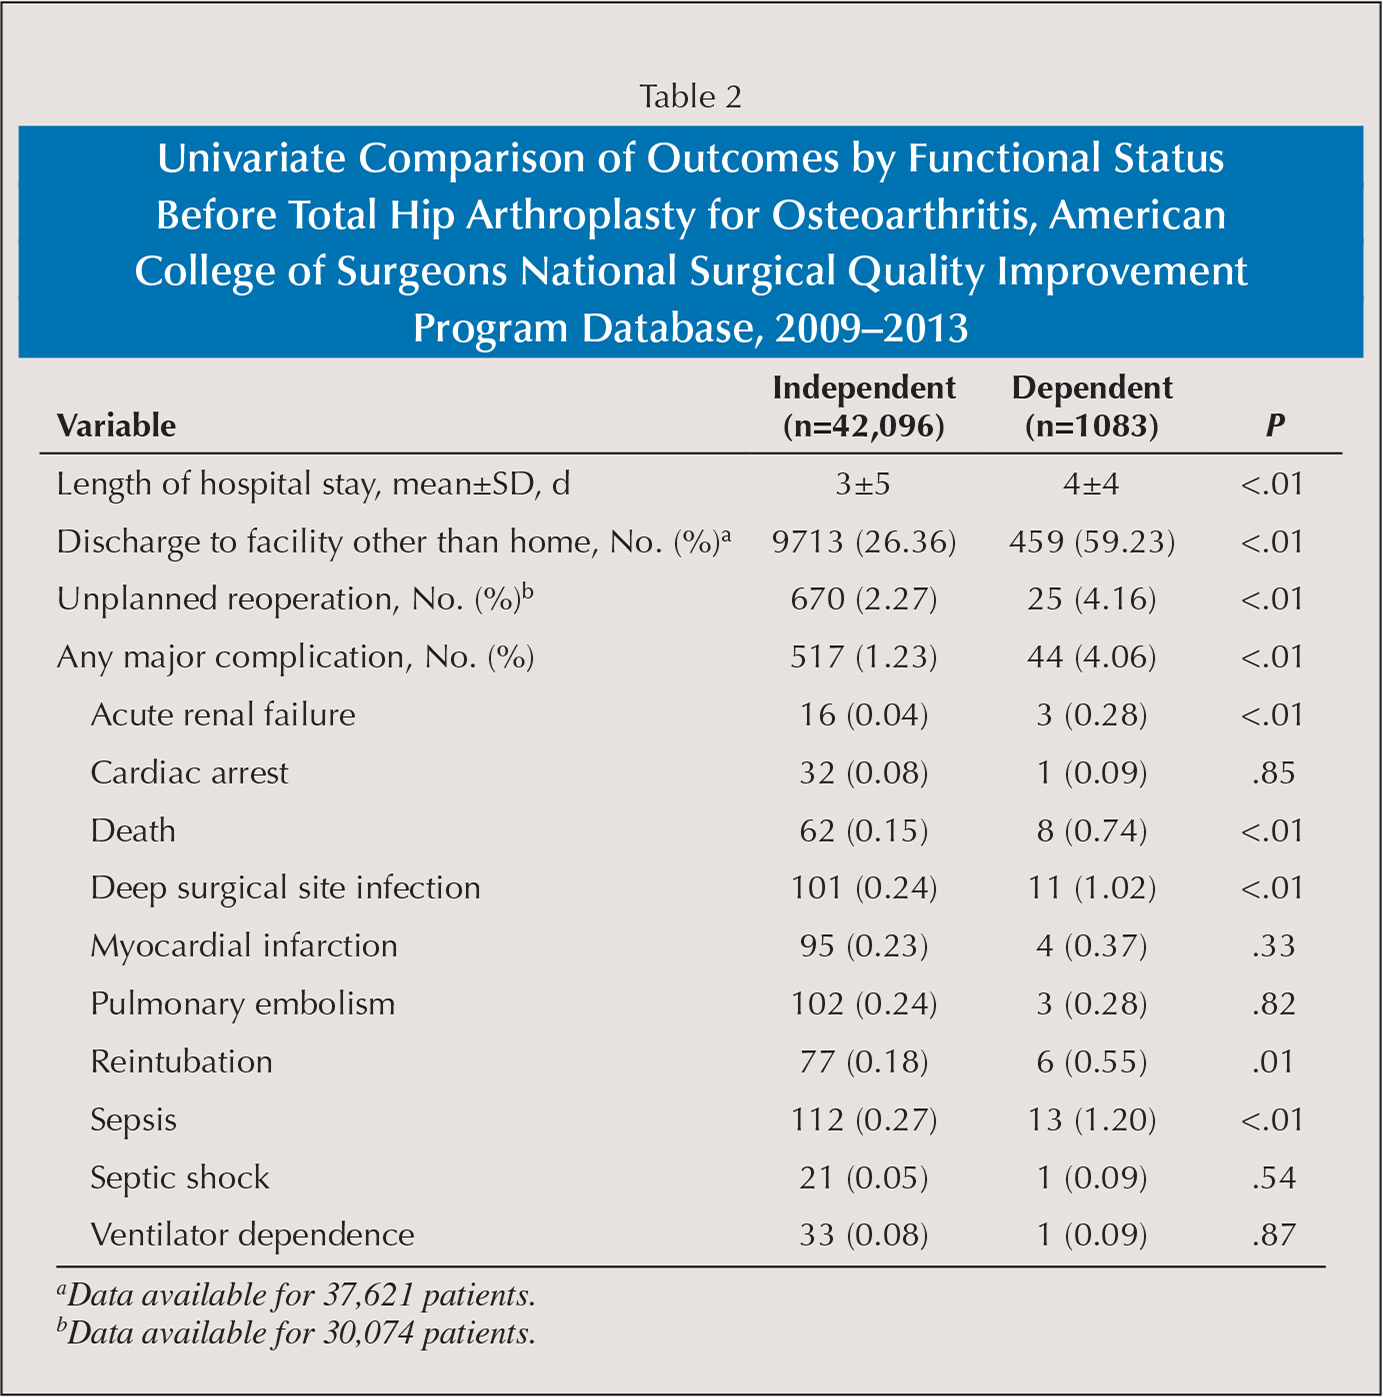 Univariate Comparison of Outcomes by Functional Status Before Total Hip Arthroplasty for Osteoarthritis, American College of Surgeons National Surgical Quality Improvement Program Database, 2009–2013